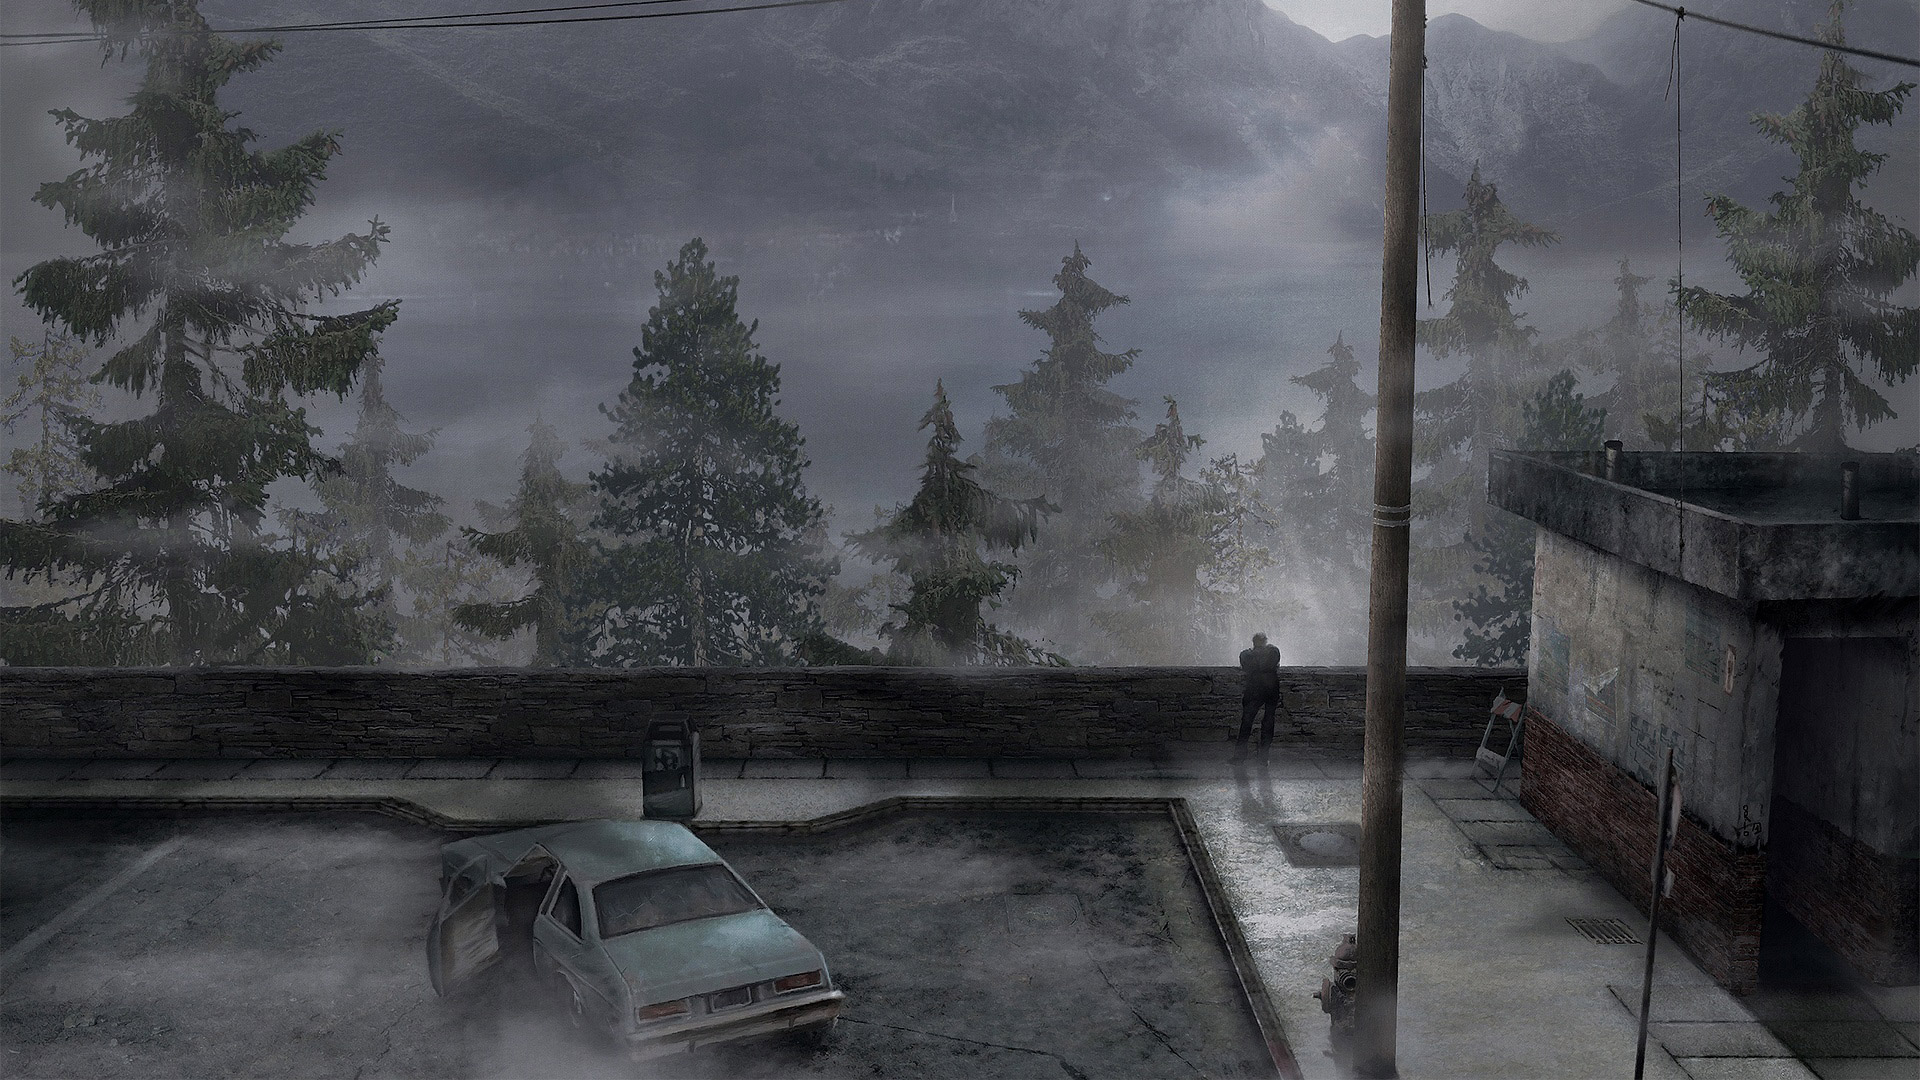 Silent Hill 2 Wallpaper in 1920x1080